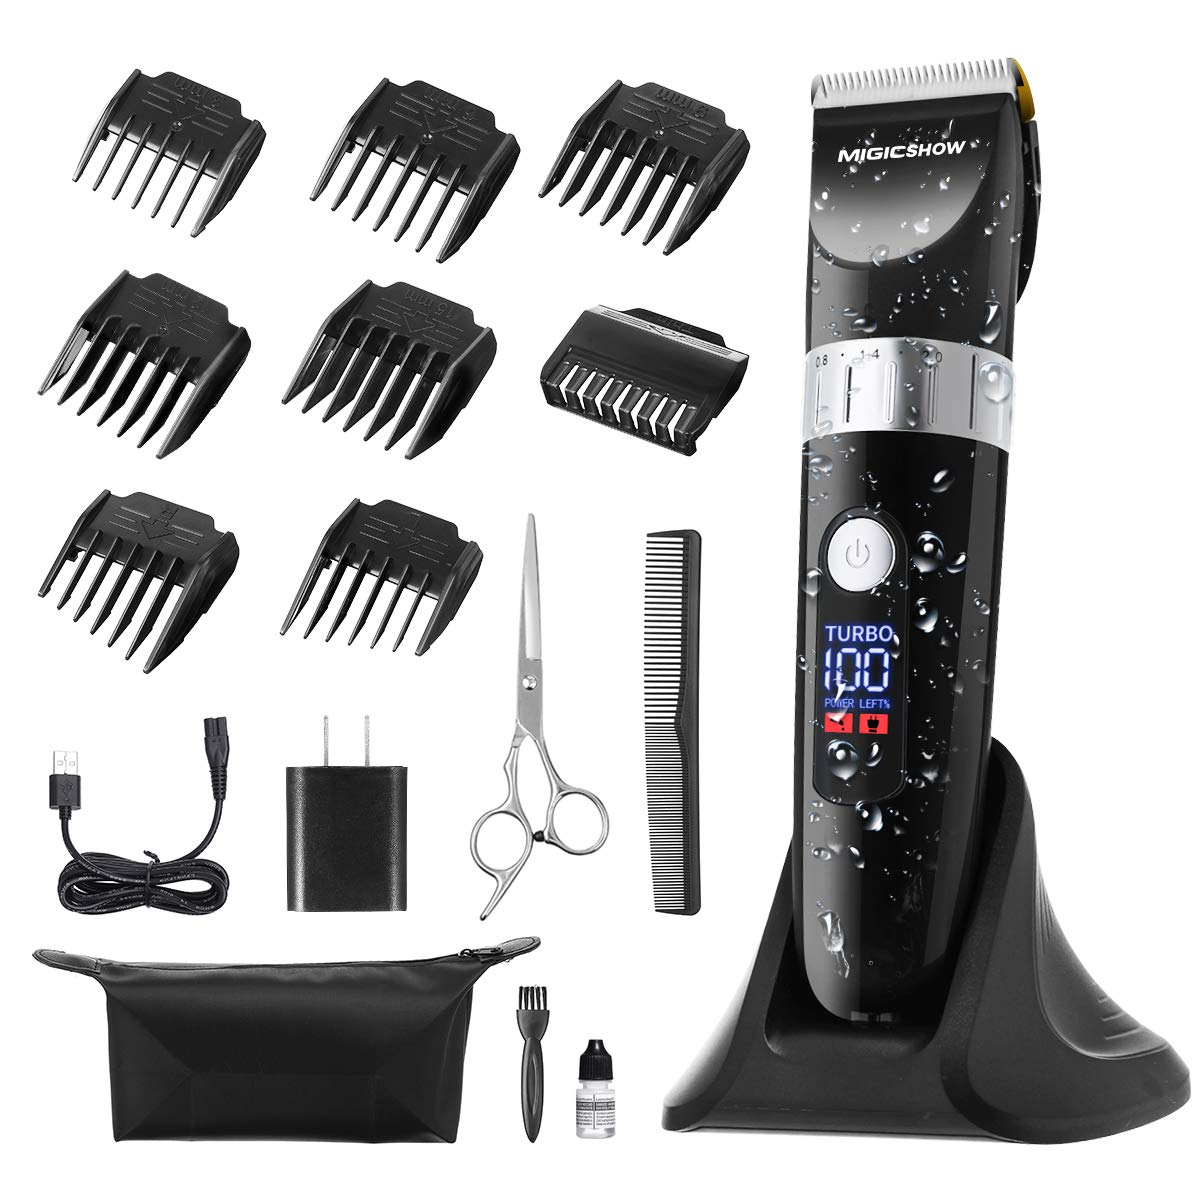 Hair Clippers for Men, Cordless Waterproof Beard Trimmer Hair Trimmer Grooming Kit